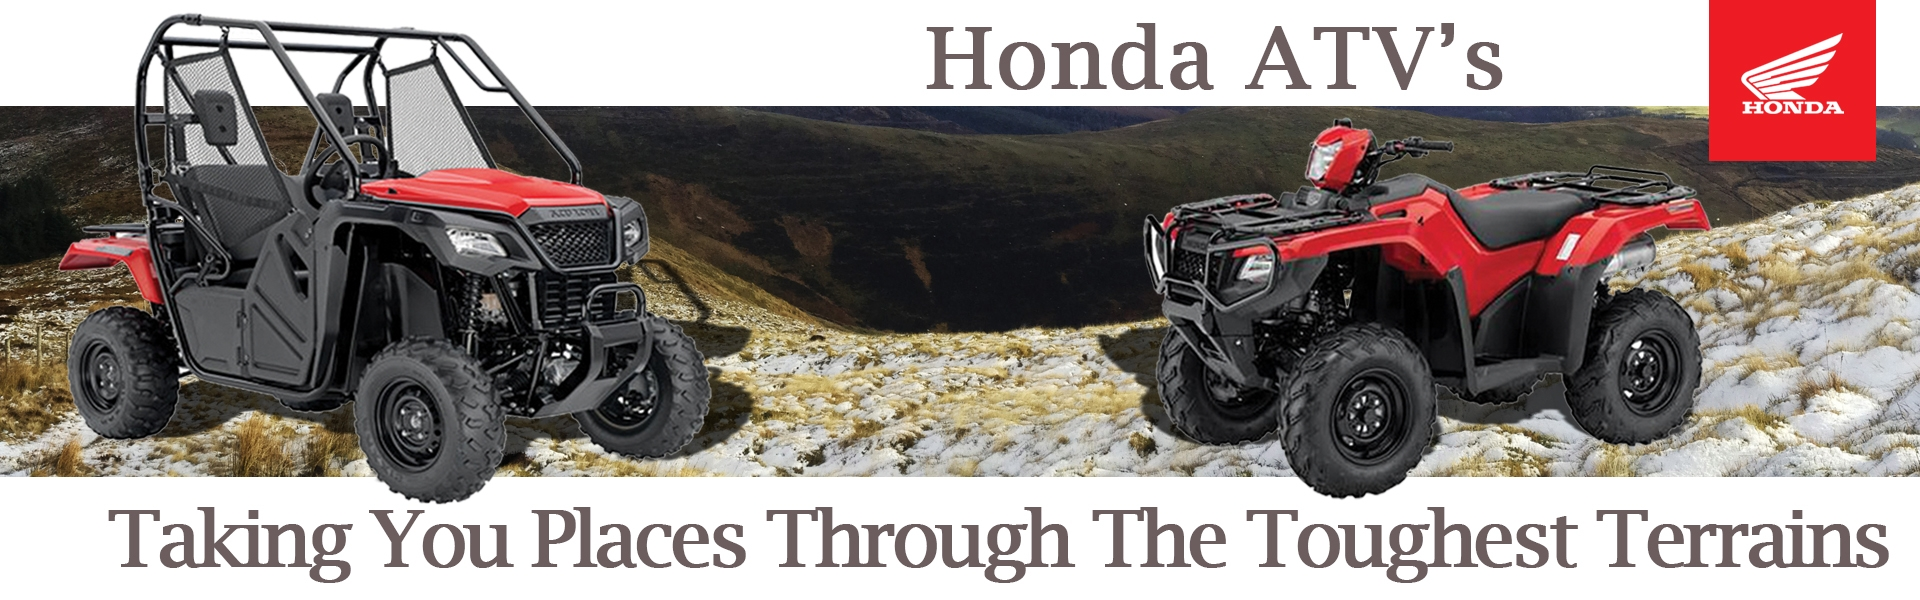 Marics Honda – The Home of Honda in Guyana